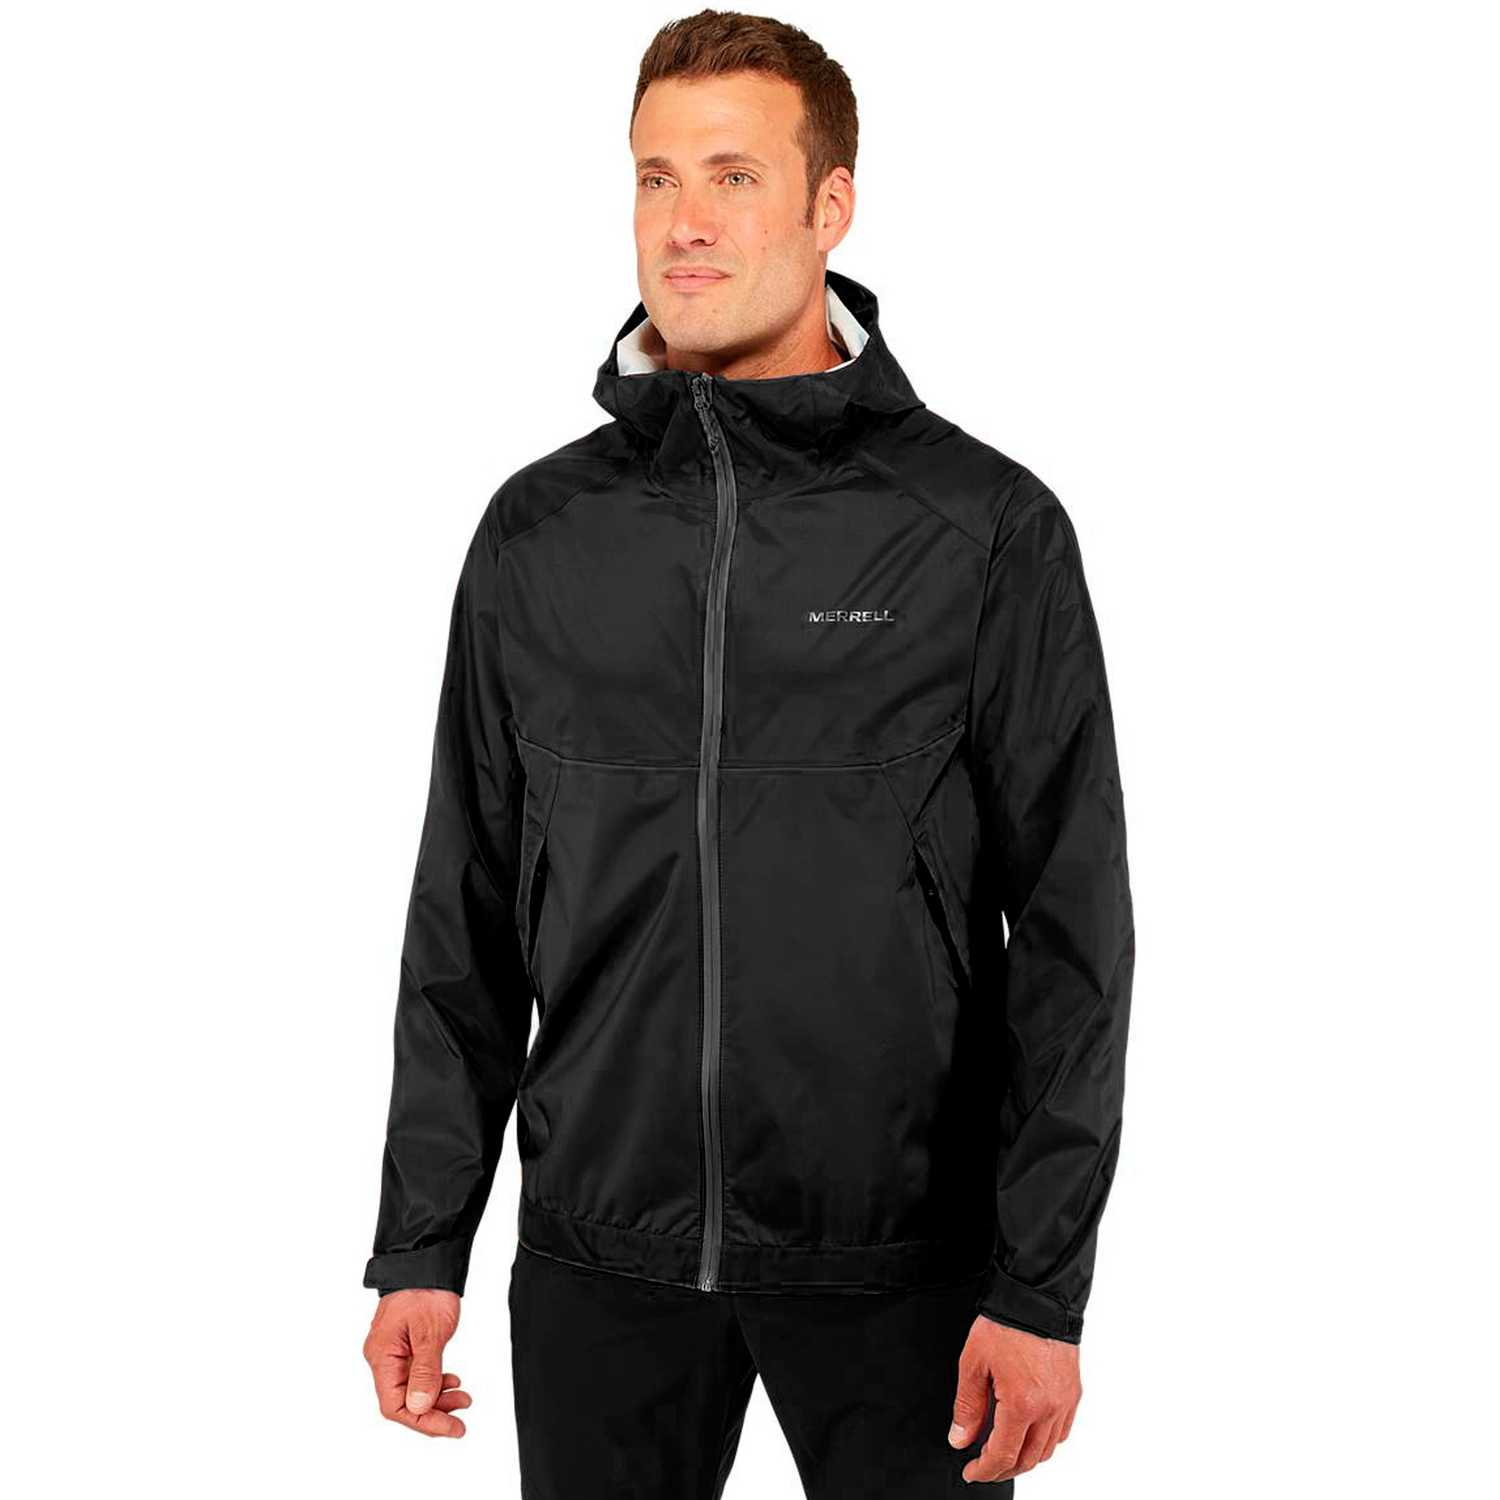 Casacas de Hombre Merrell Negro fallon 4.0 fz noninsulated jacket